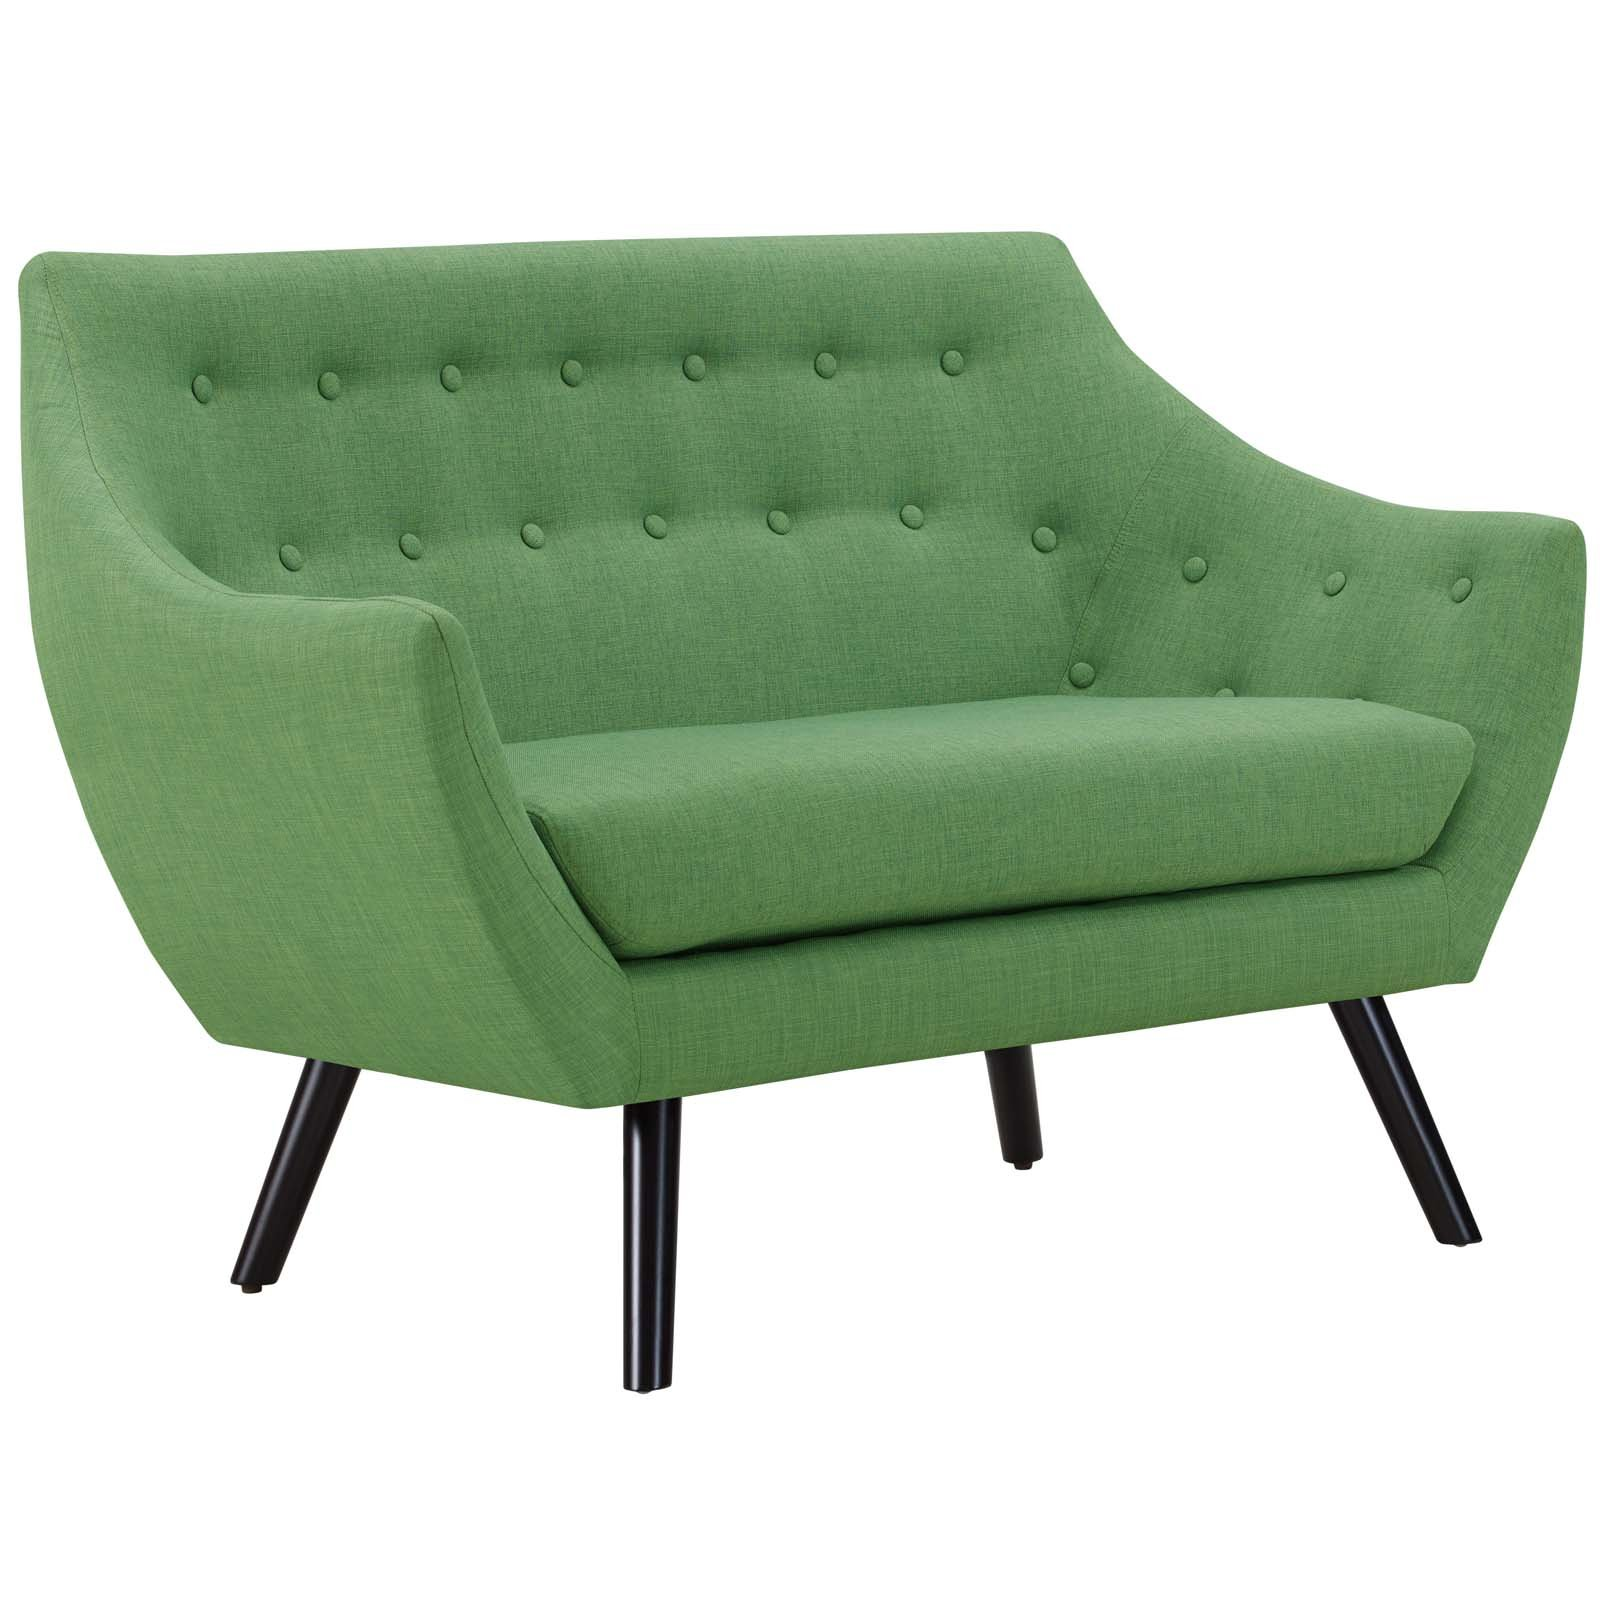 Modway Allegory Mid-Century Modern Upholstered Loveseat in Green